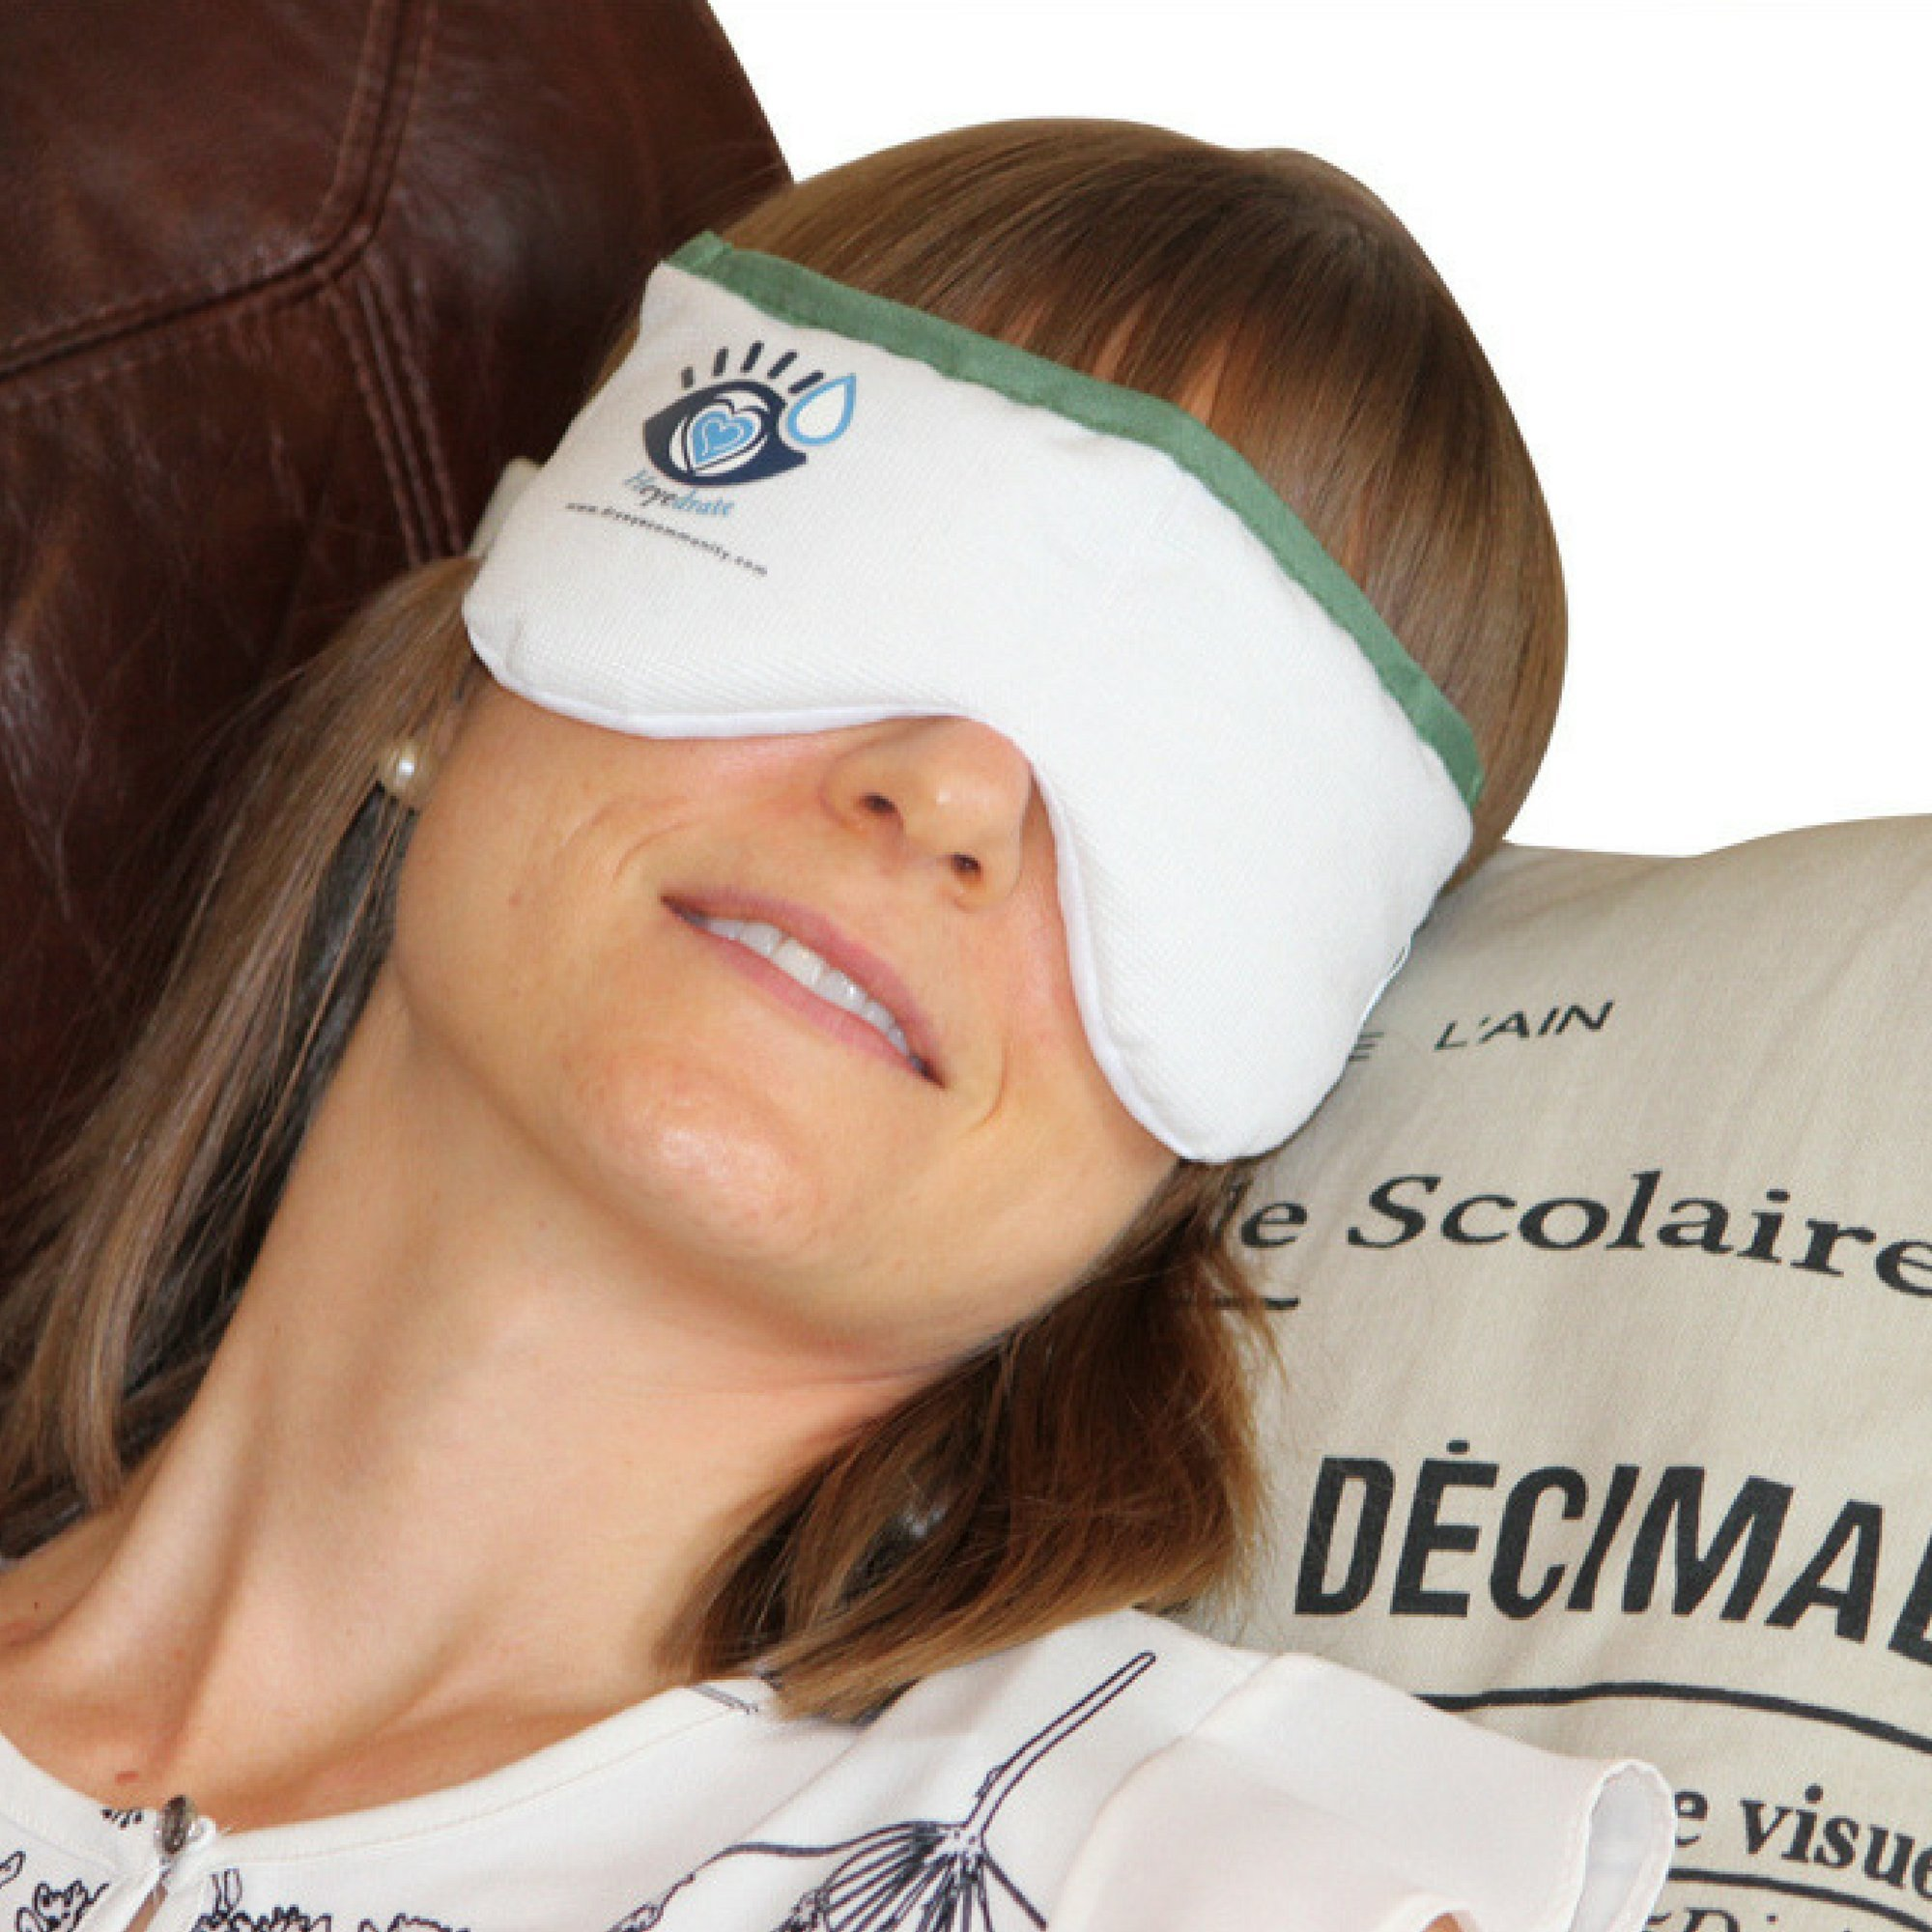 Dry Eye Mask by Heyedrate   Soothing Dry Eye Compress for Dry Eyes, Blepharitis, Meibomian Gland Dysfunction, Styes, Headaches, Sinuses, Allergies, and More